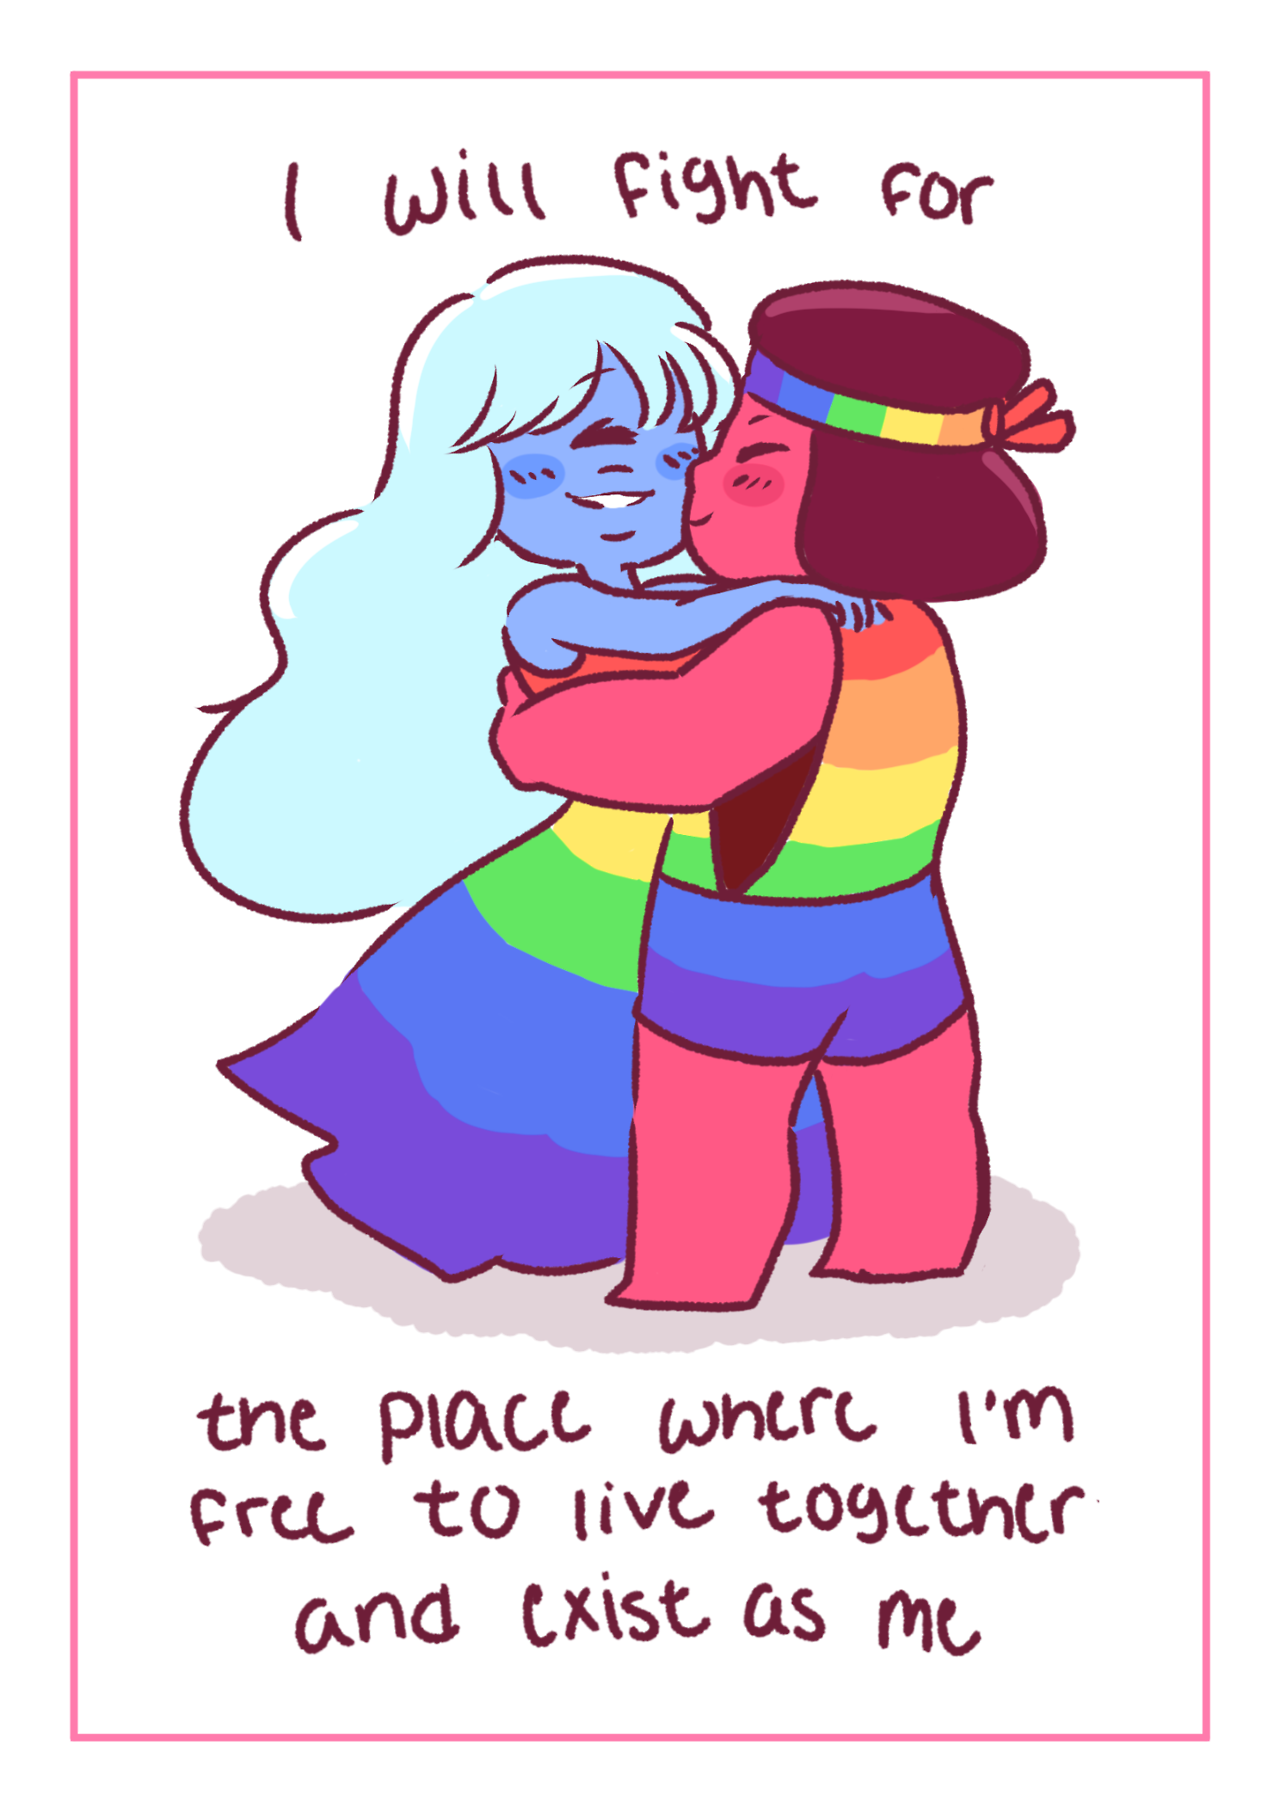 I'm practically really late with this, but happy Pride month. It went by really fast.